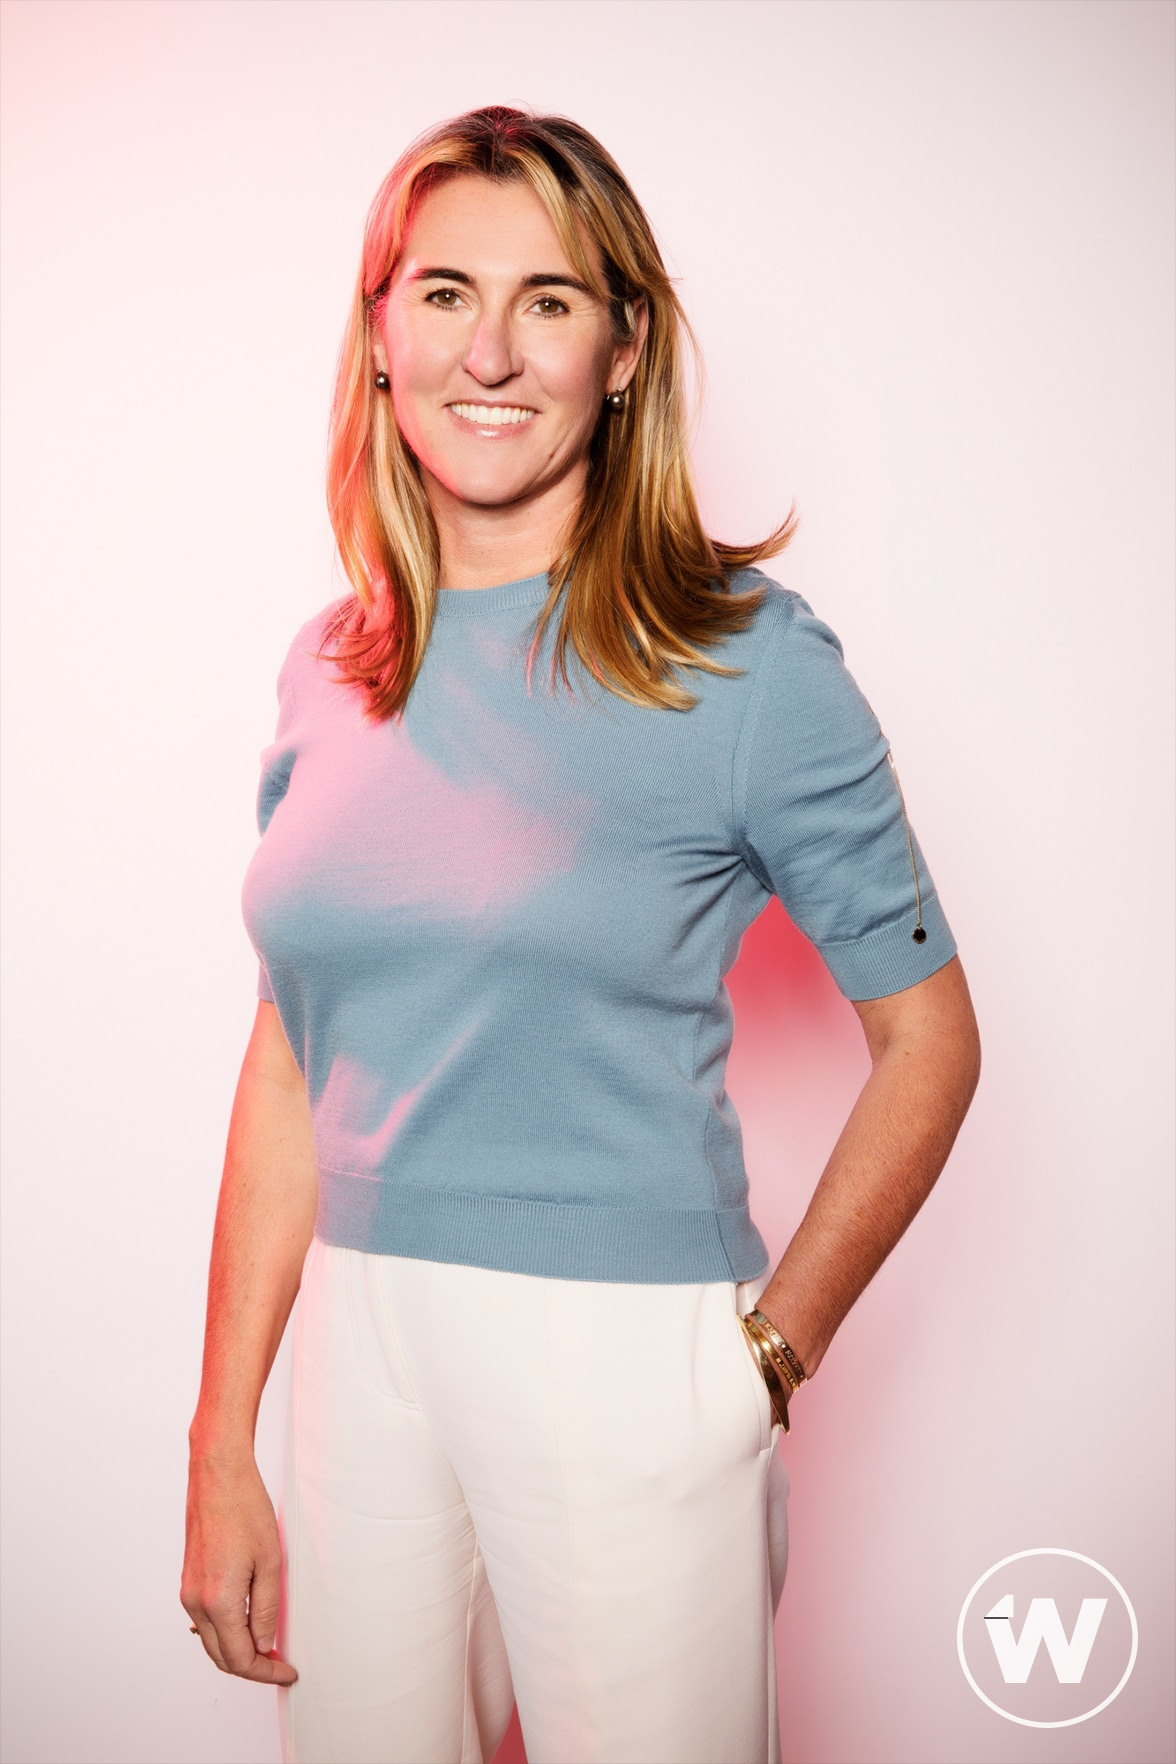 Nancy Dubuc, Power Women Summit